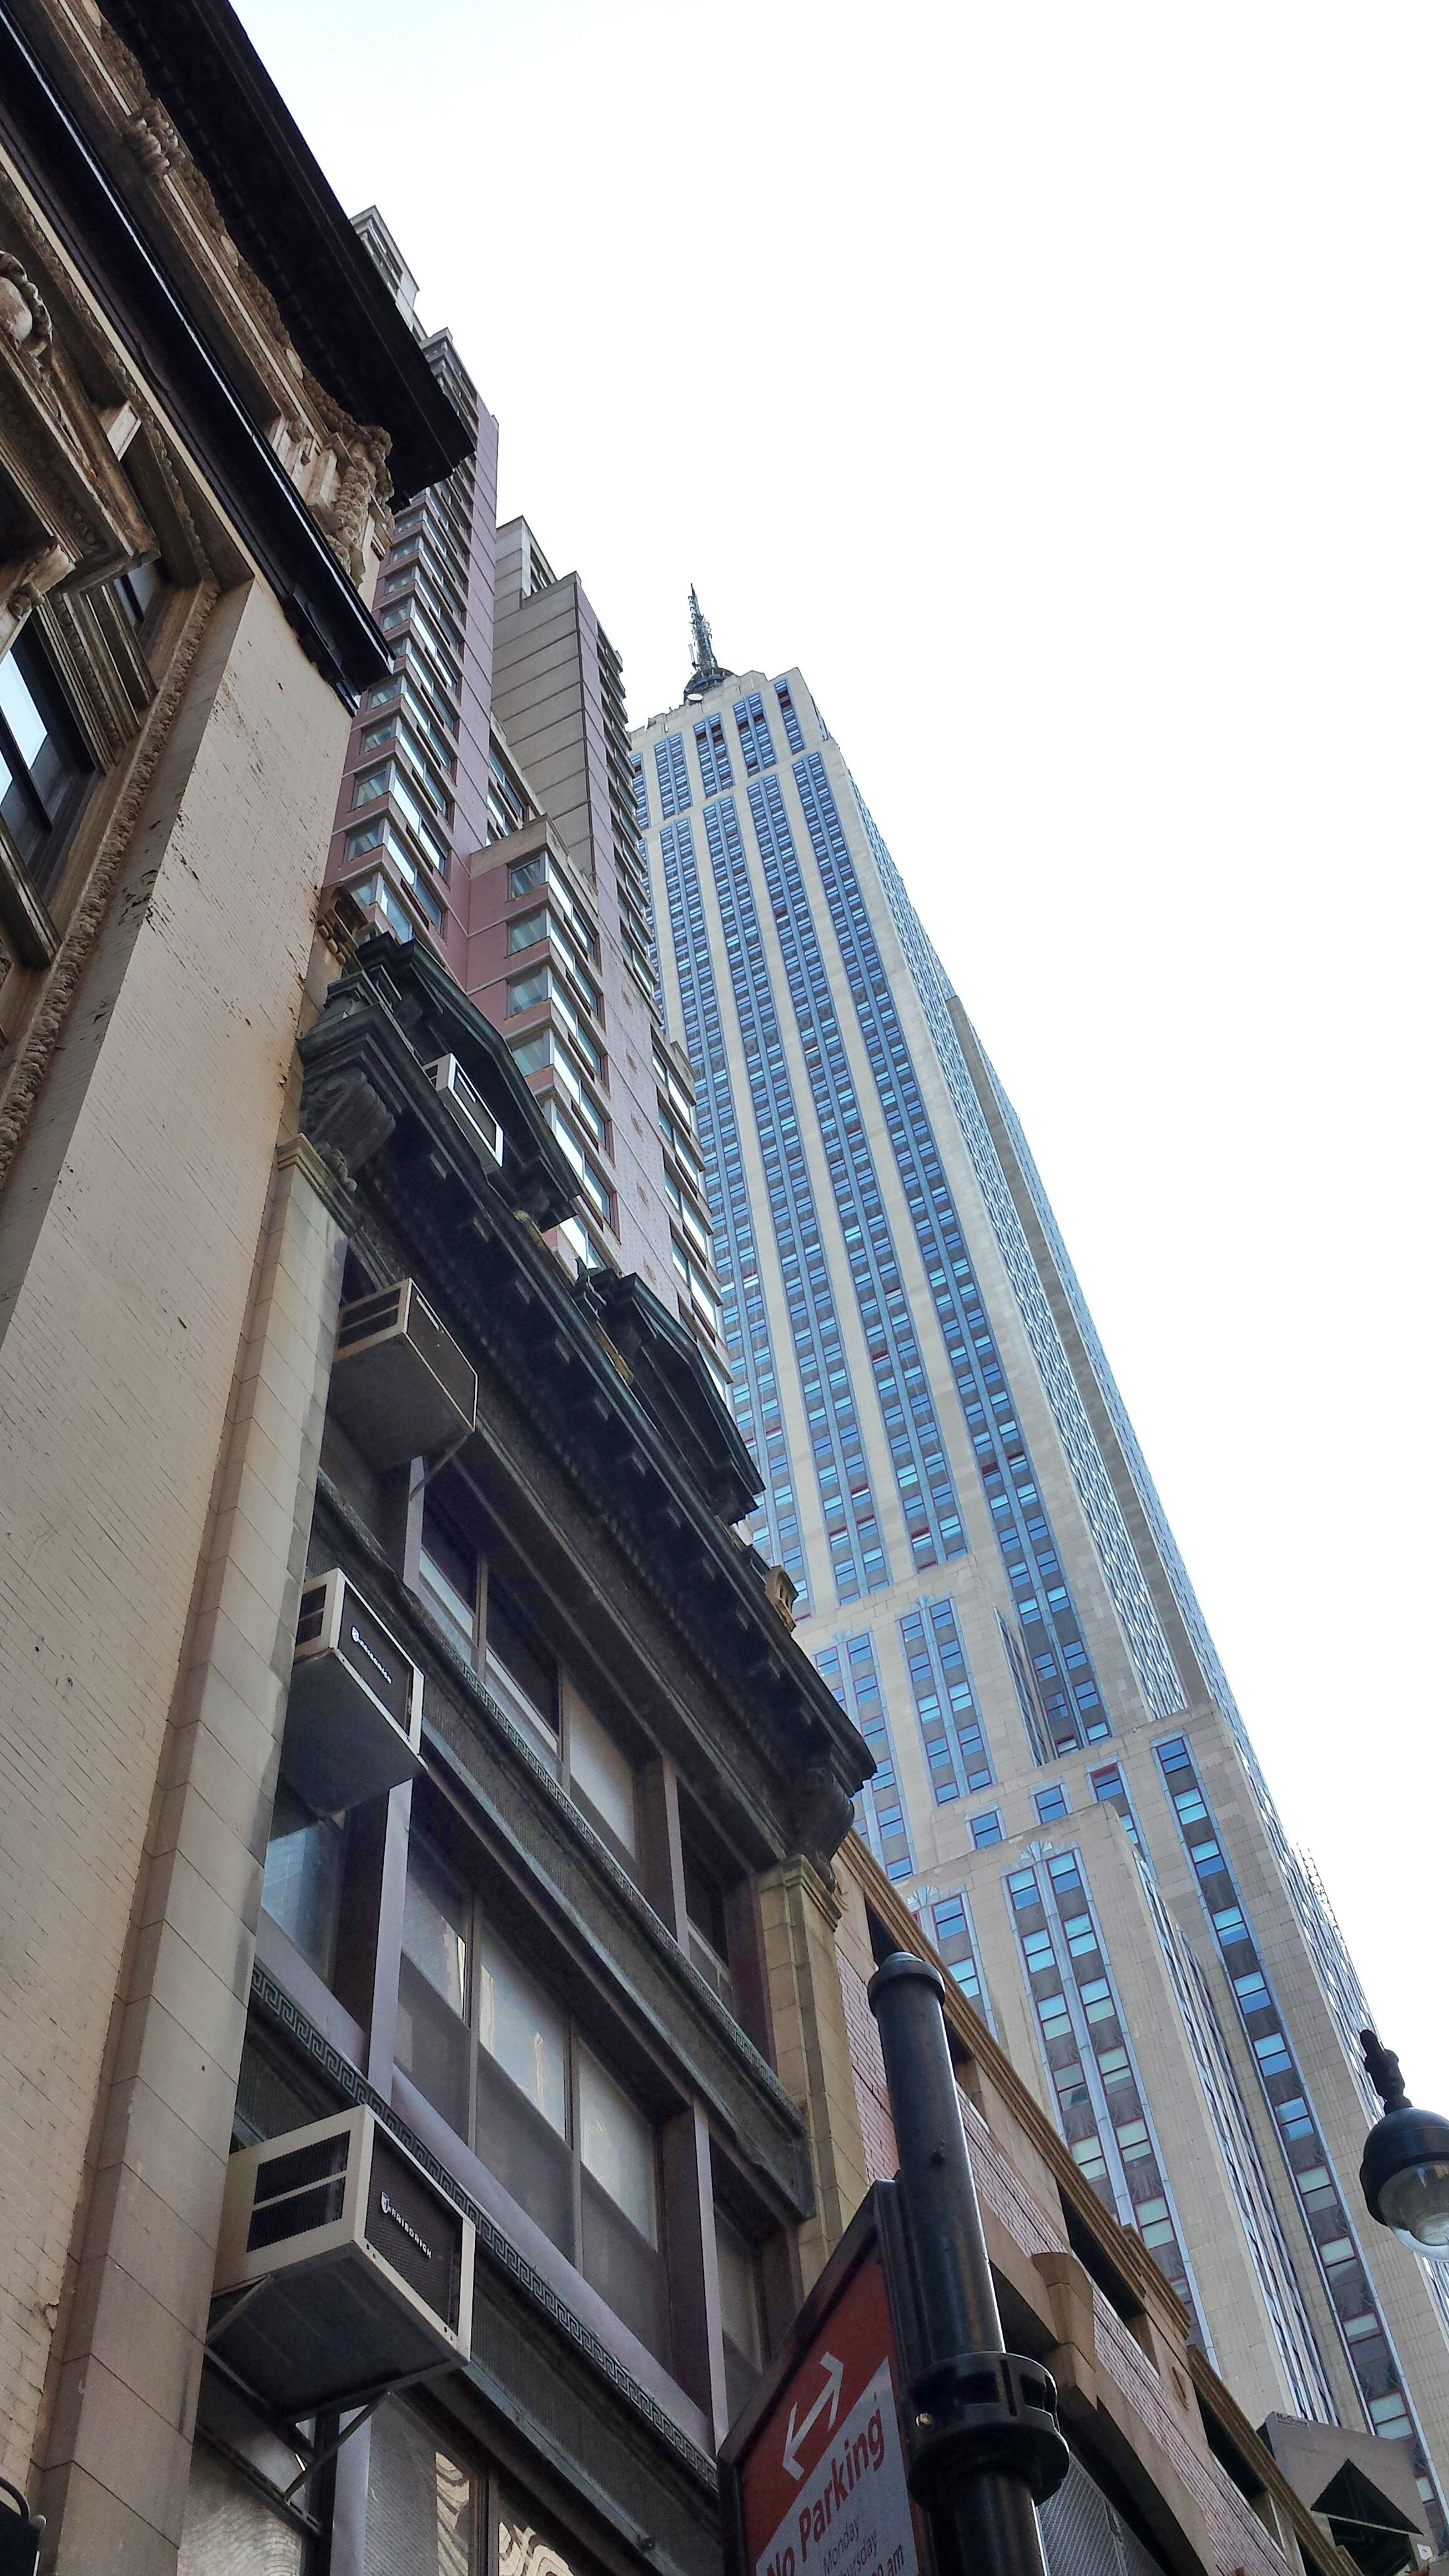 architecture, building exterior, built structure, low angle view, clear sky, city, building, residential building, window, residential structure, tall - high, office building, sky, tower, modern, skyscraper, outdoors, day, apartment, city life